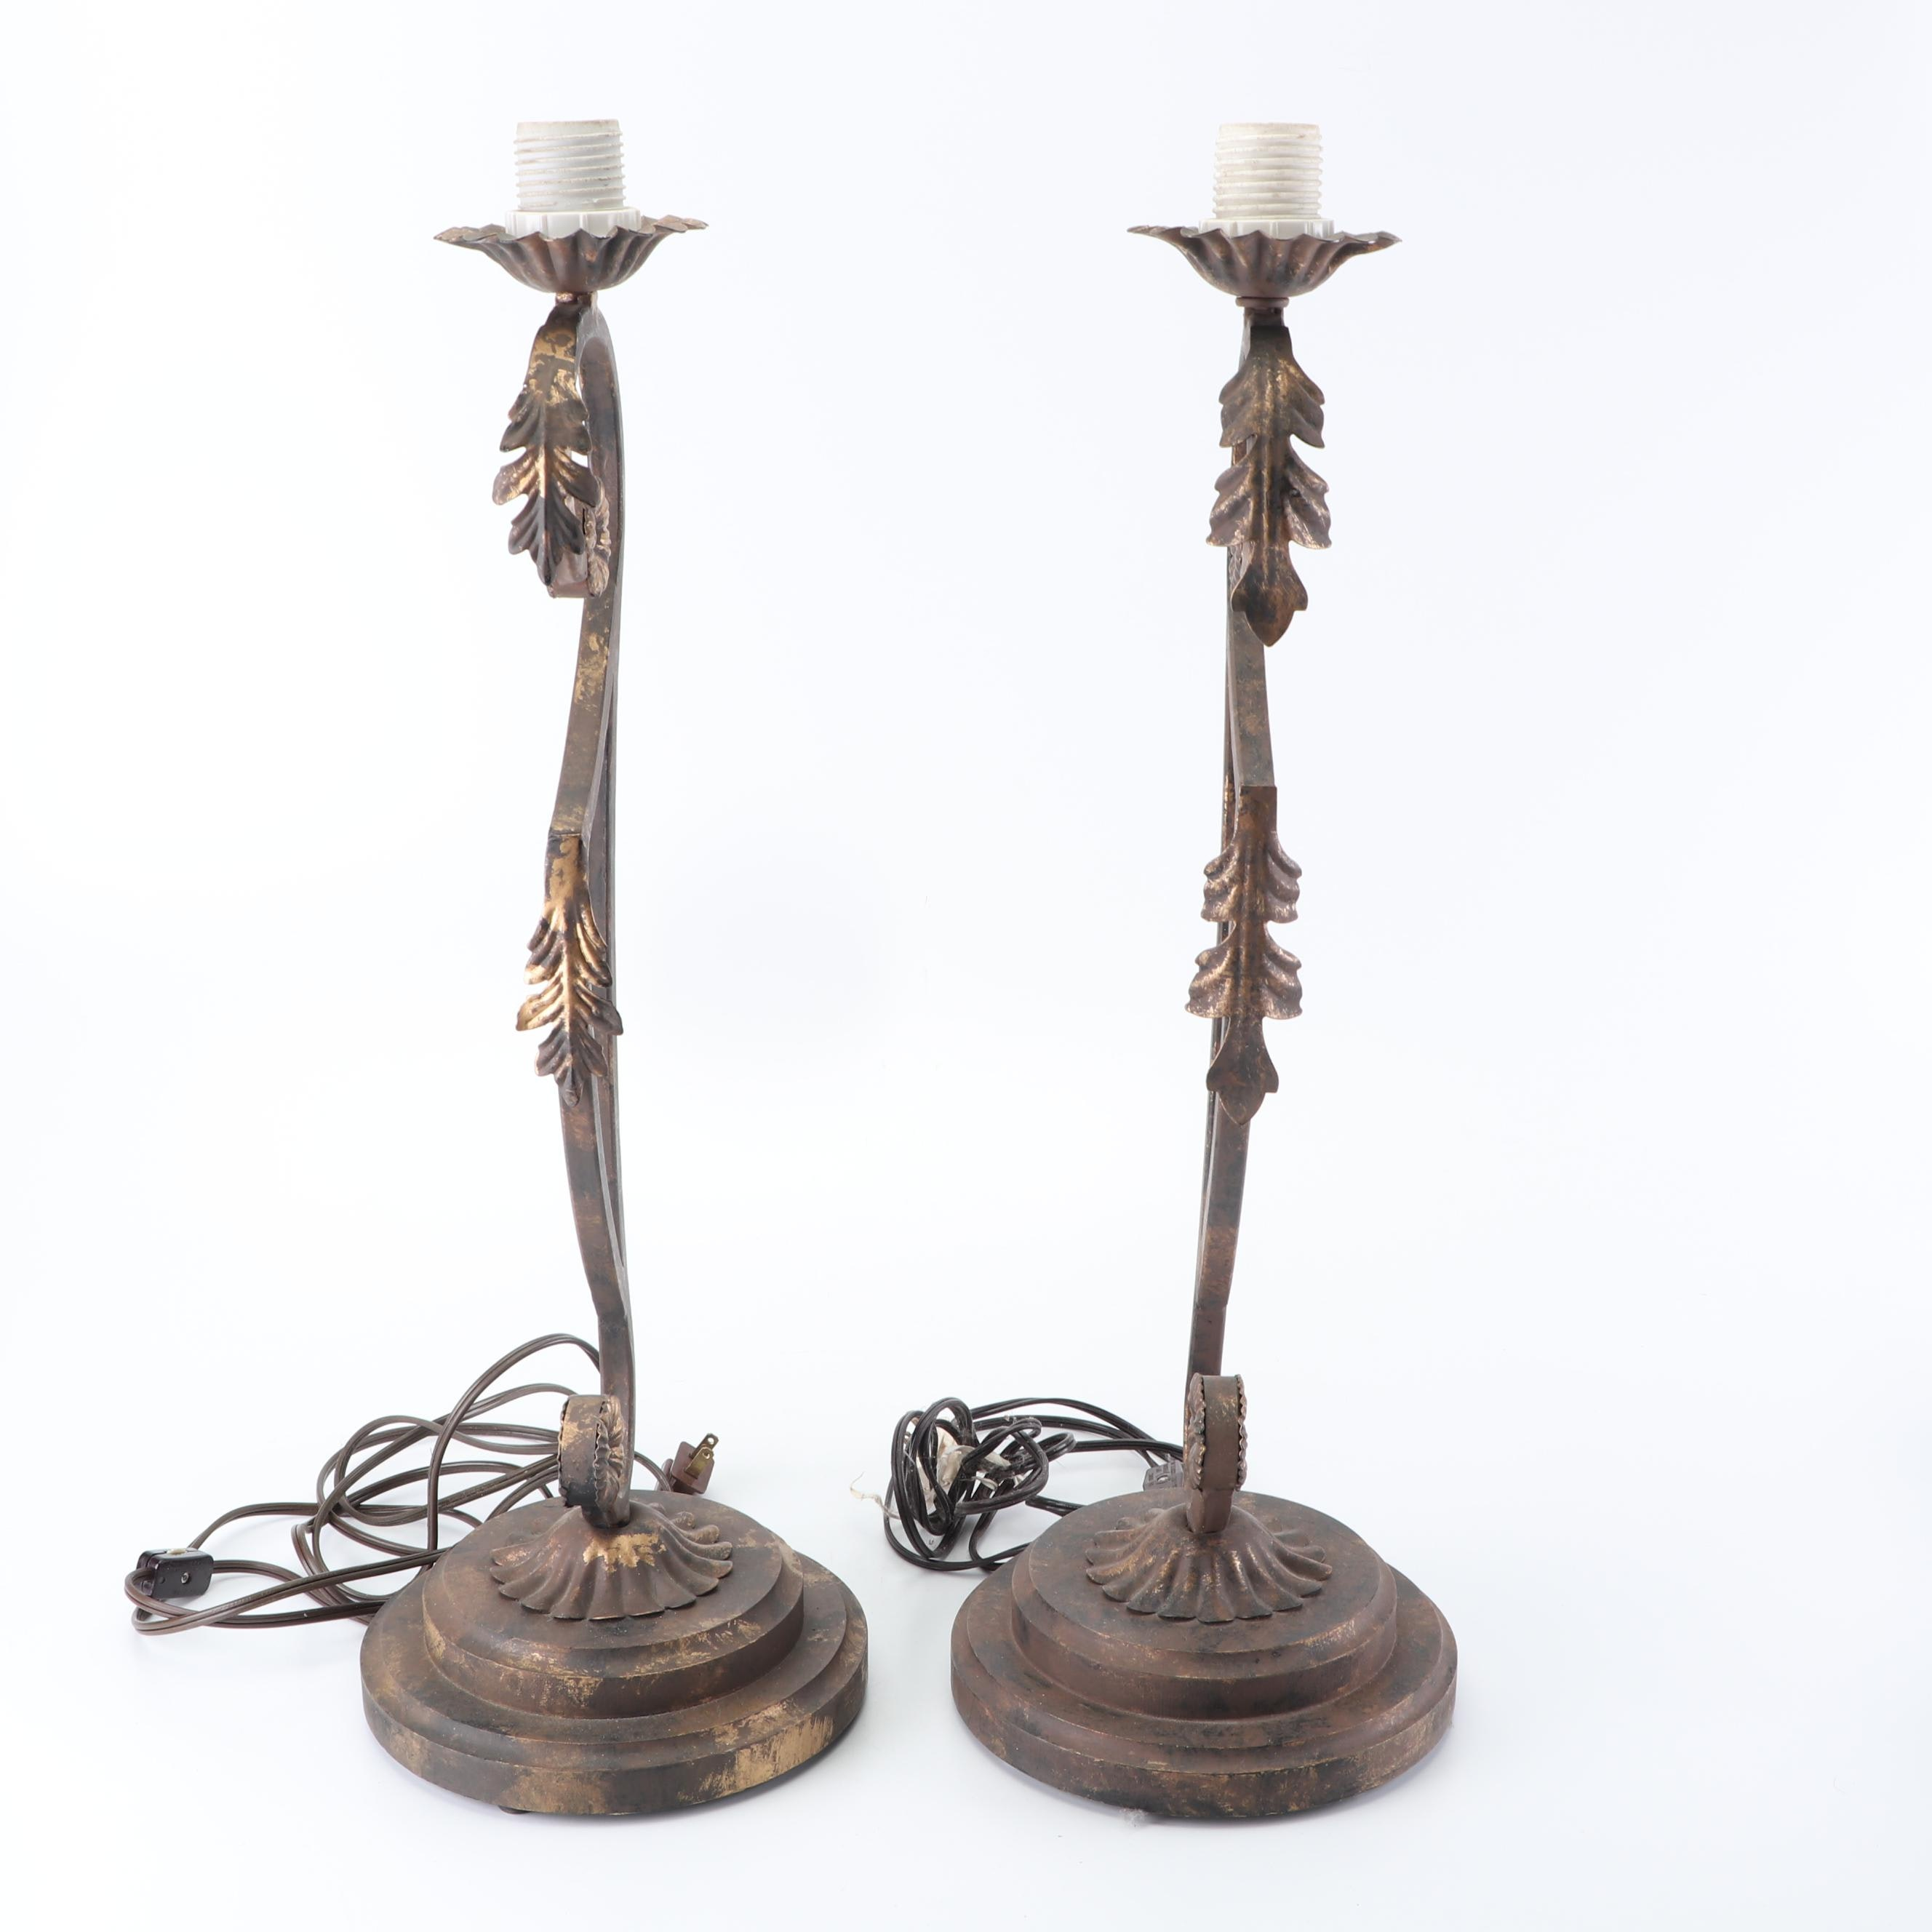 Acanthus Leaf and Floret Motif Curved Metal Torchiere Table Lamps